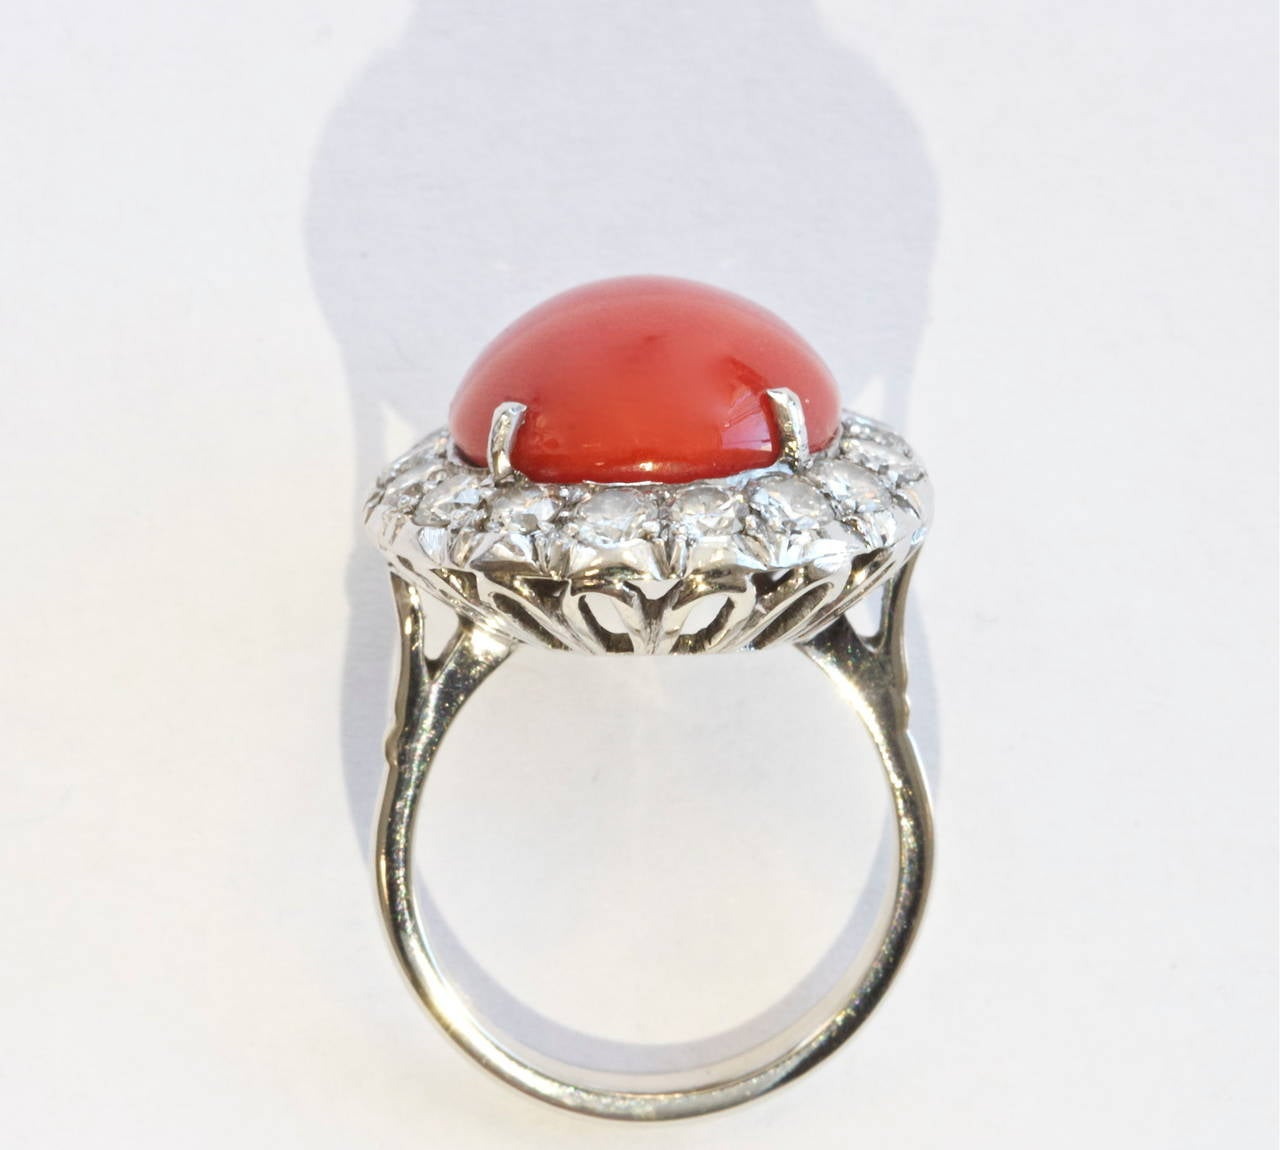 Ox Blood Coral Diamond Gold Ring For Sale At 1stdibs. Geologist Rings. Mathematical Rings. Light Wedding Rings. Pillow Top Wedding Rings